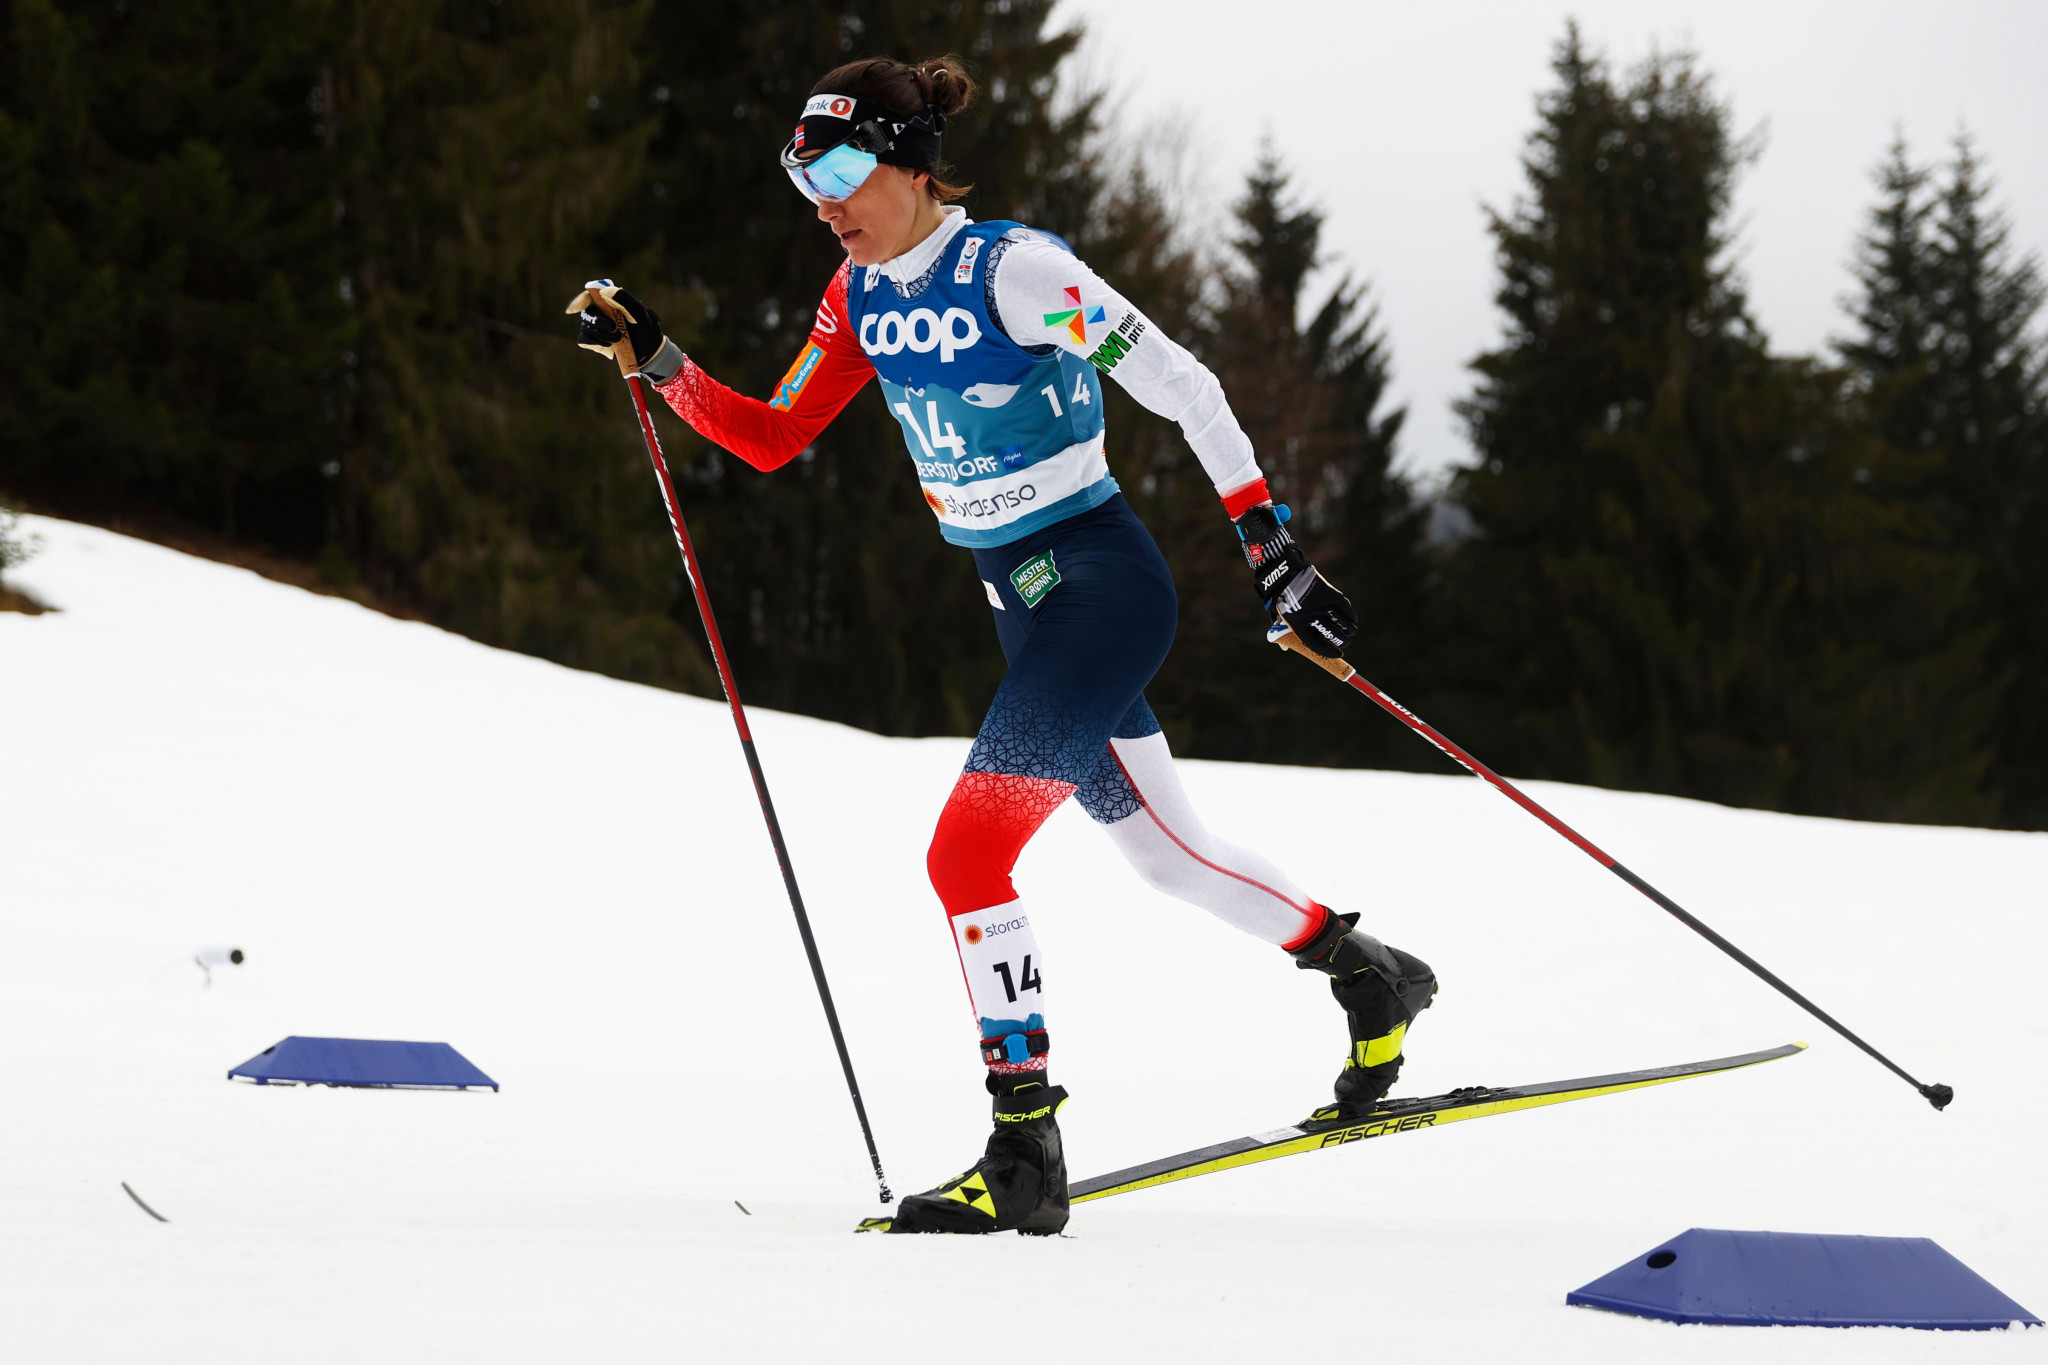 Hegstad Krueger and Weng win pursuit events as FIS Cross-Country World Cup season concludes